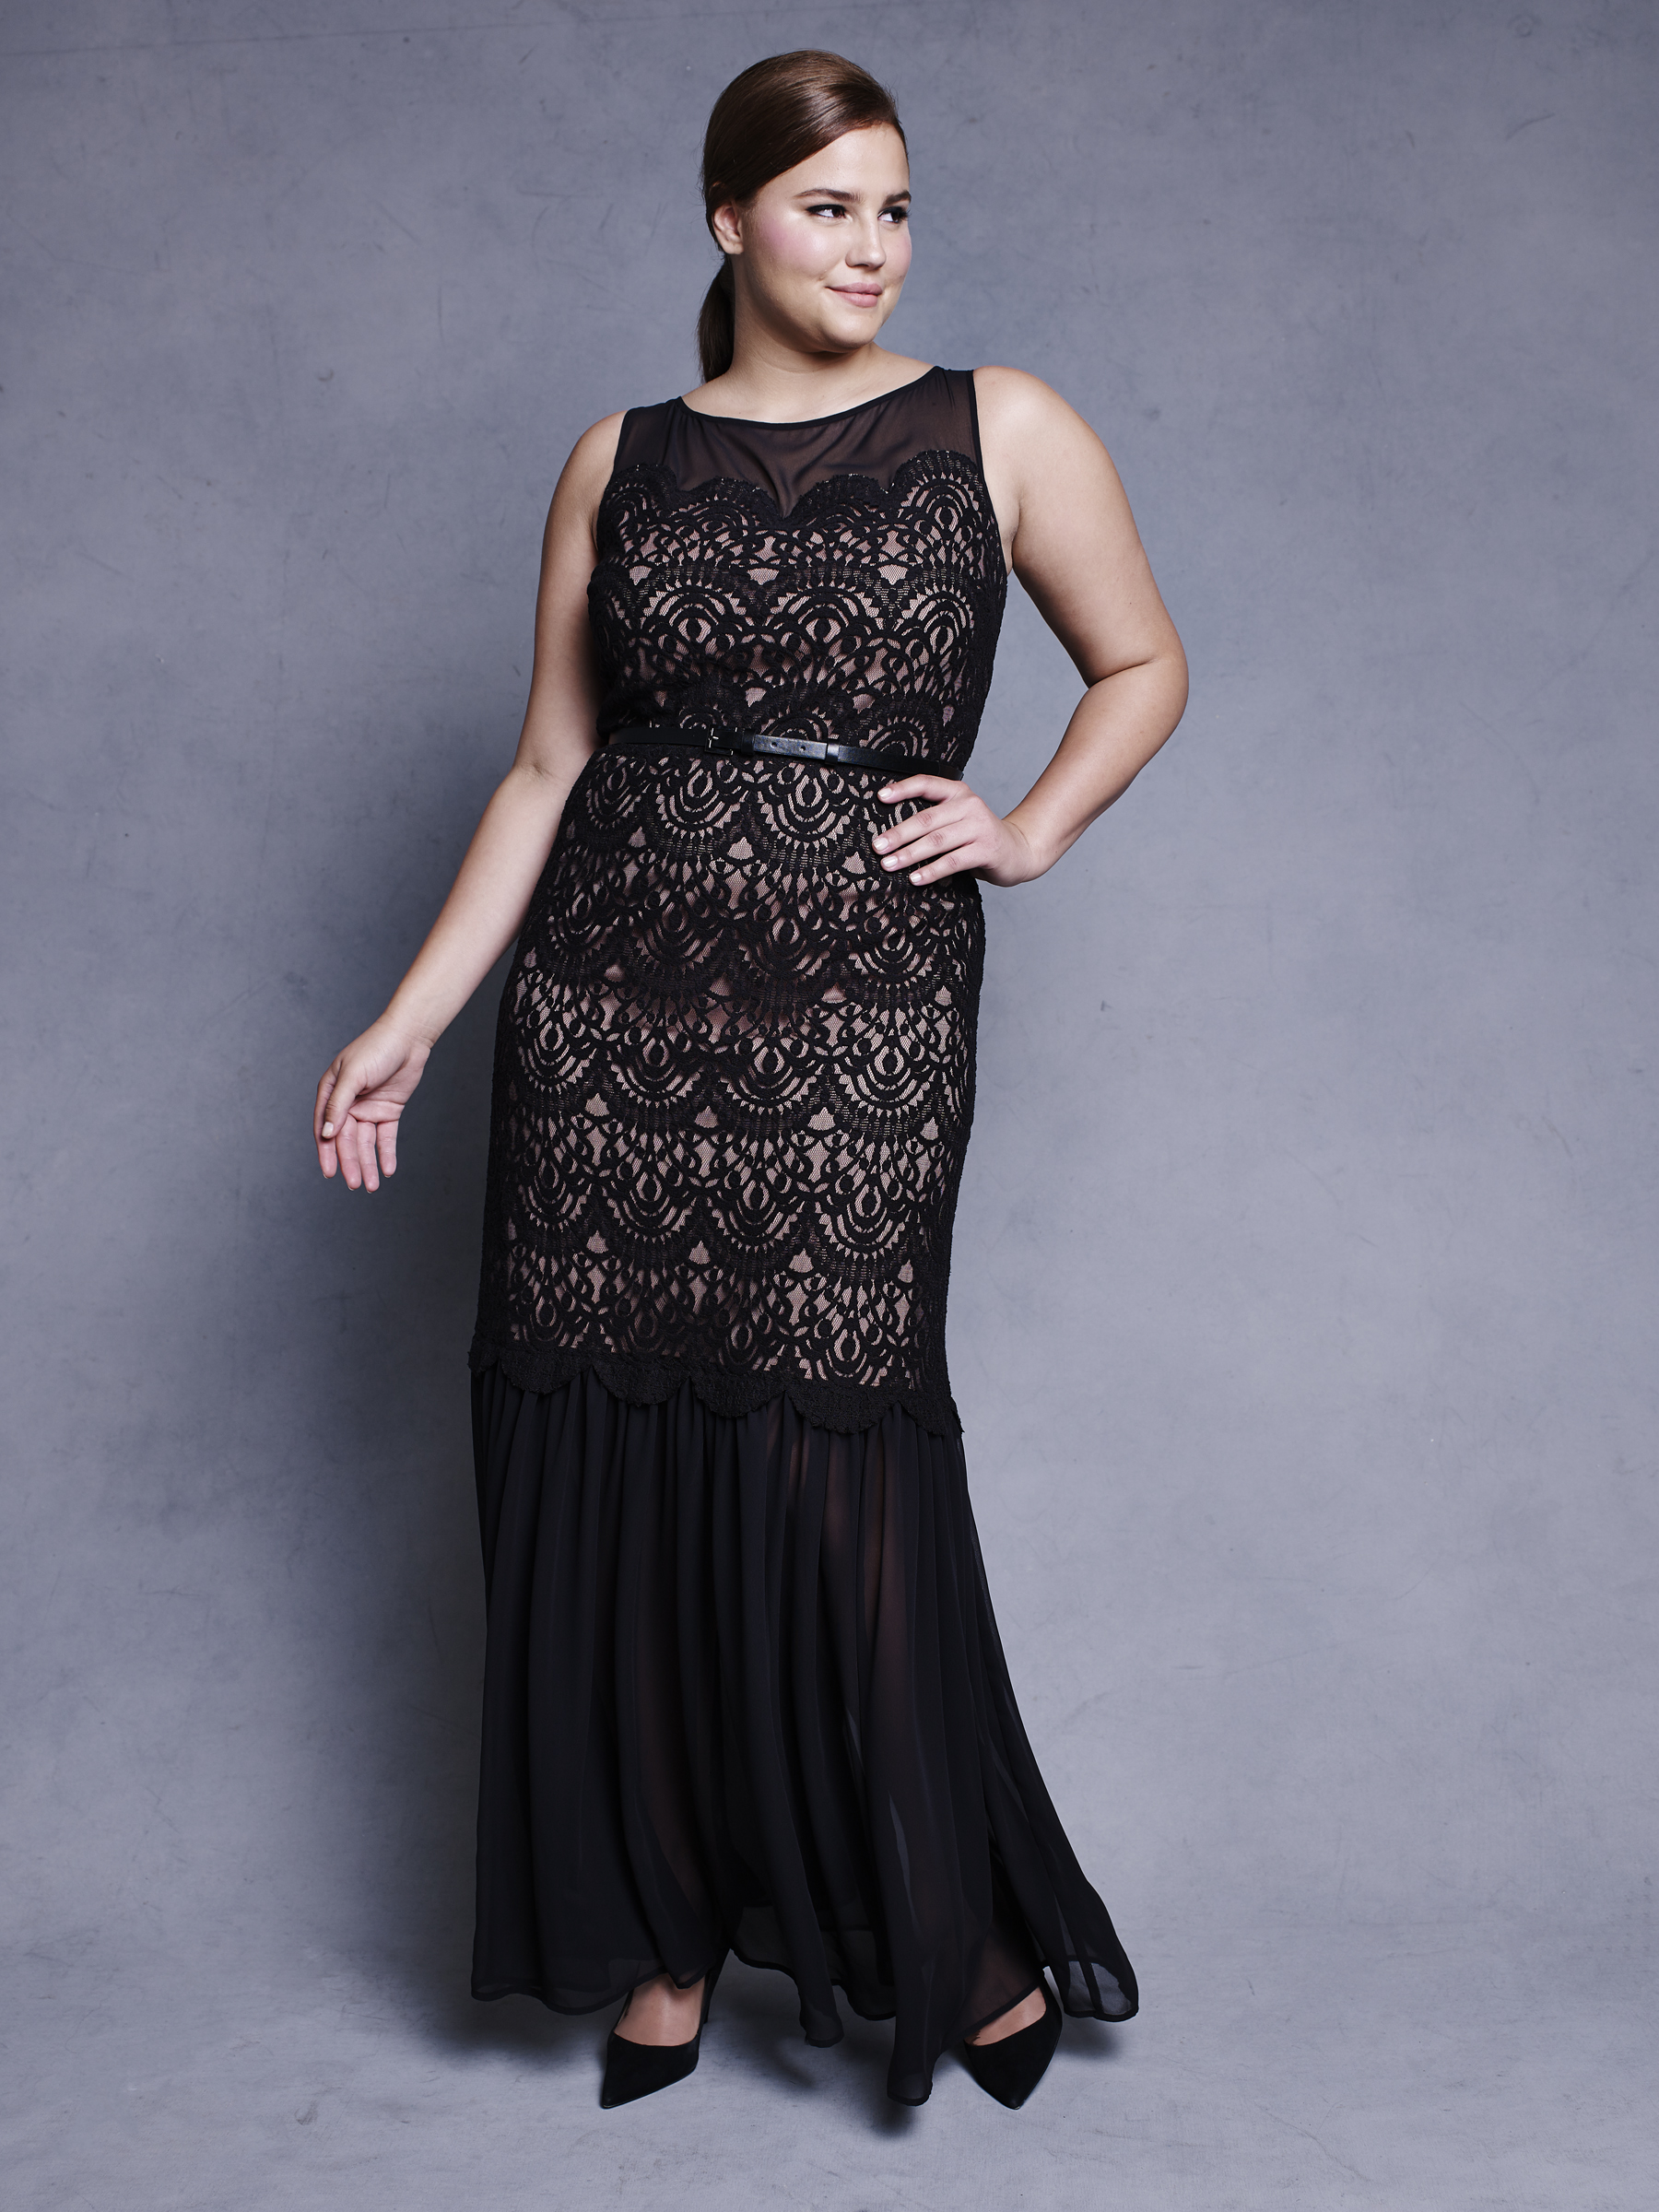 0c33be405caef Lela Rose for Lane Bryant Holiday Collection